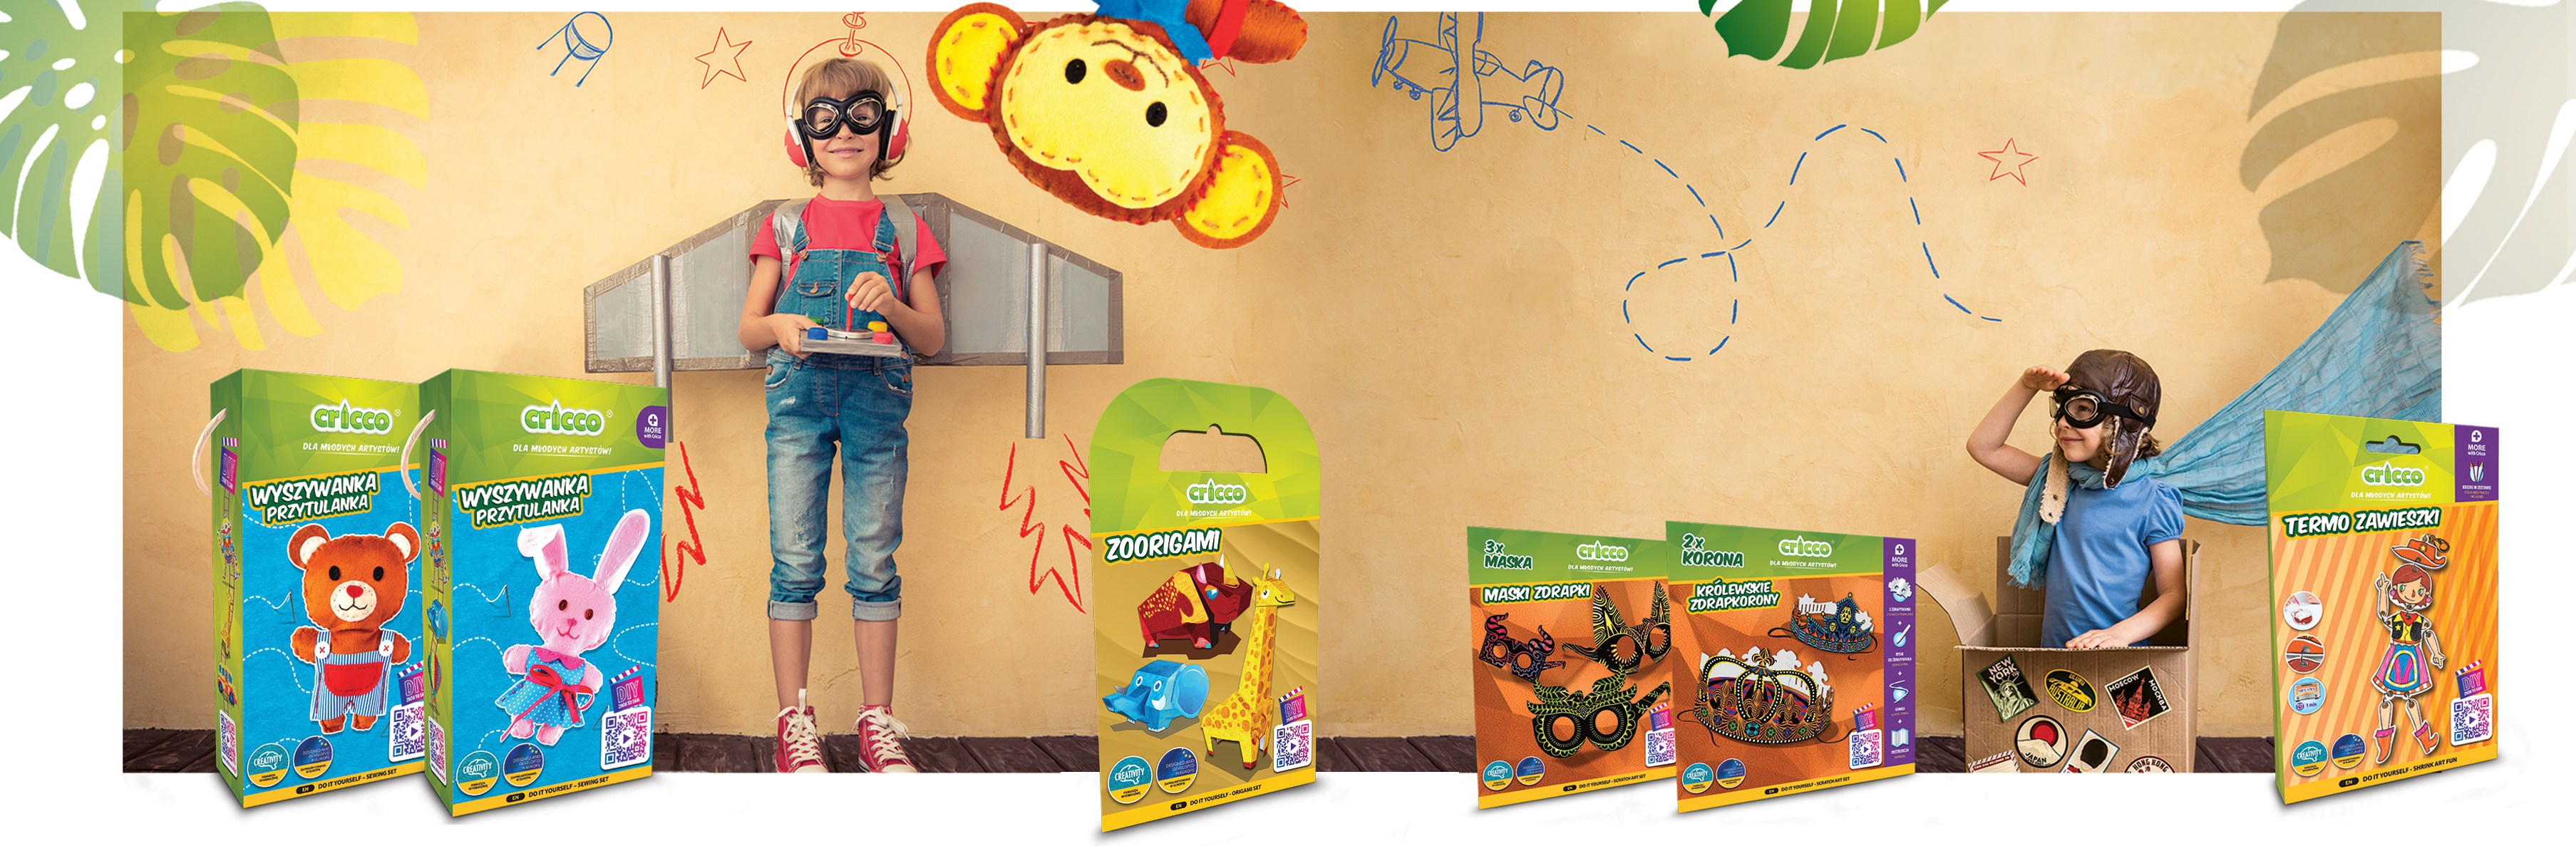 Be creative do it yourself with cricco amex stationery be creative do it yourself with cricco solutioingenieria Gallery